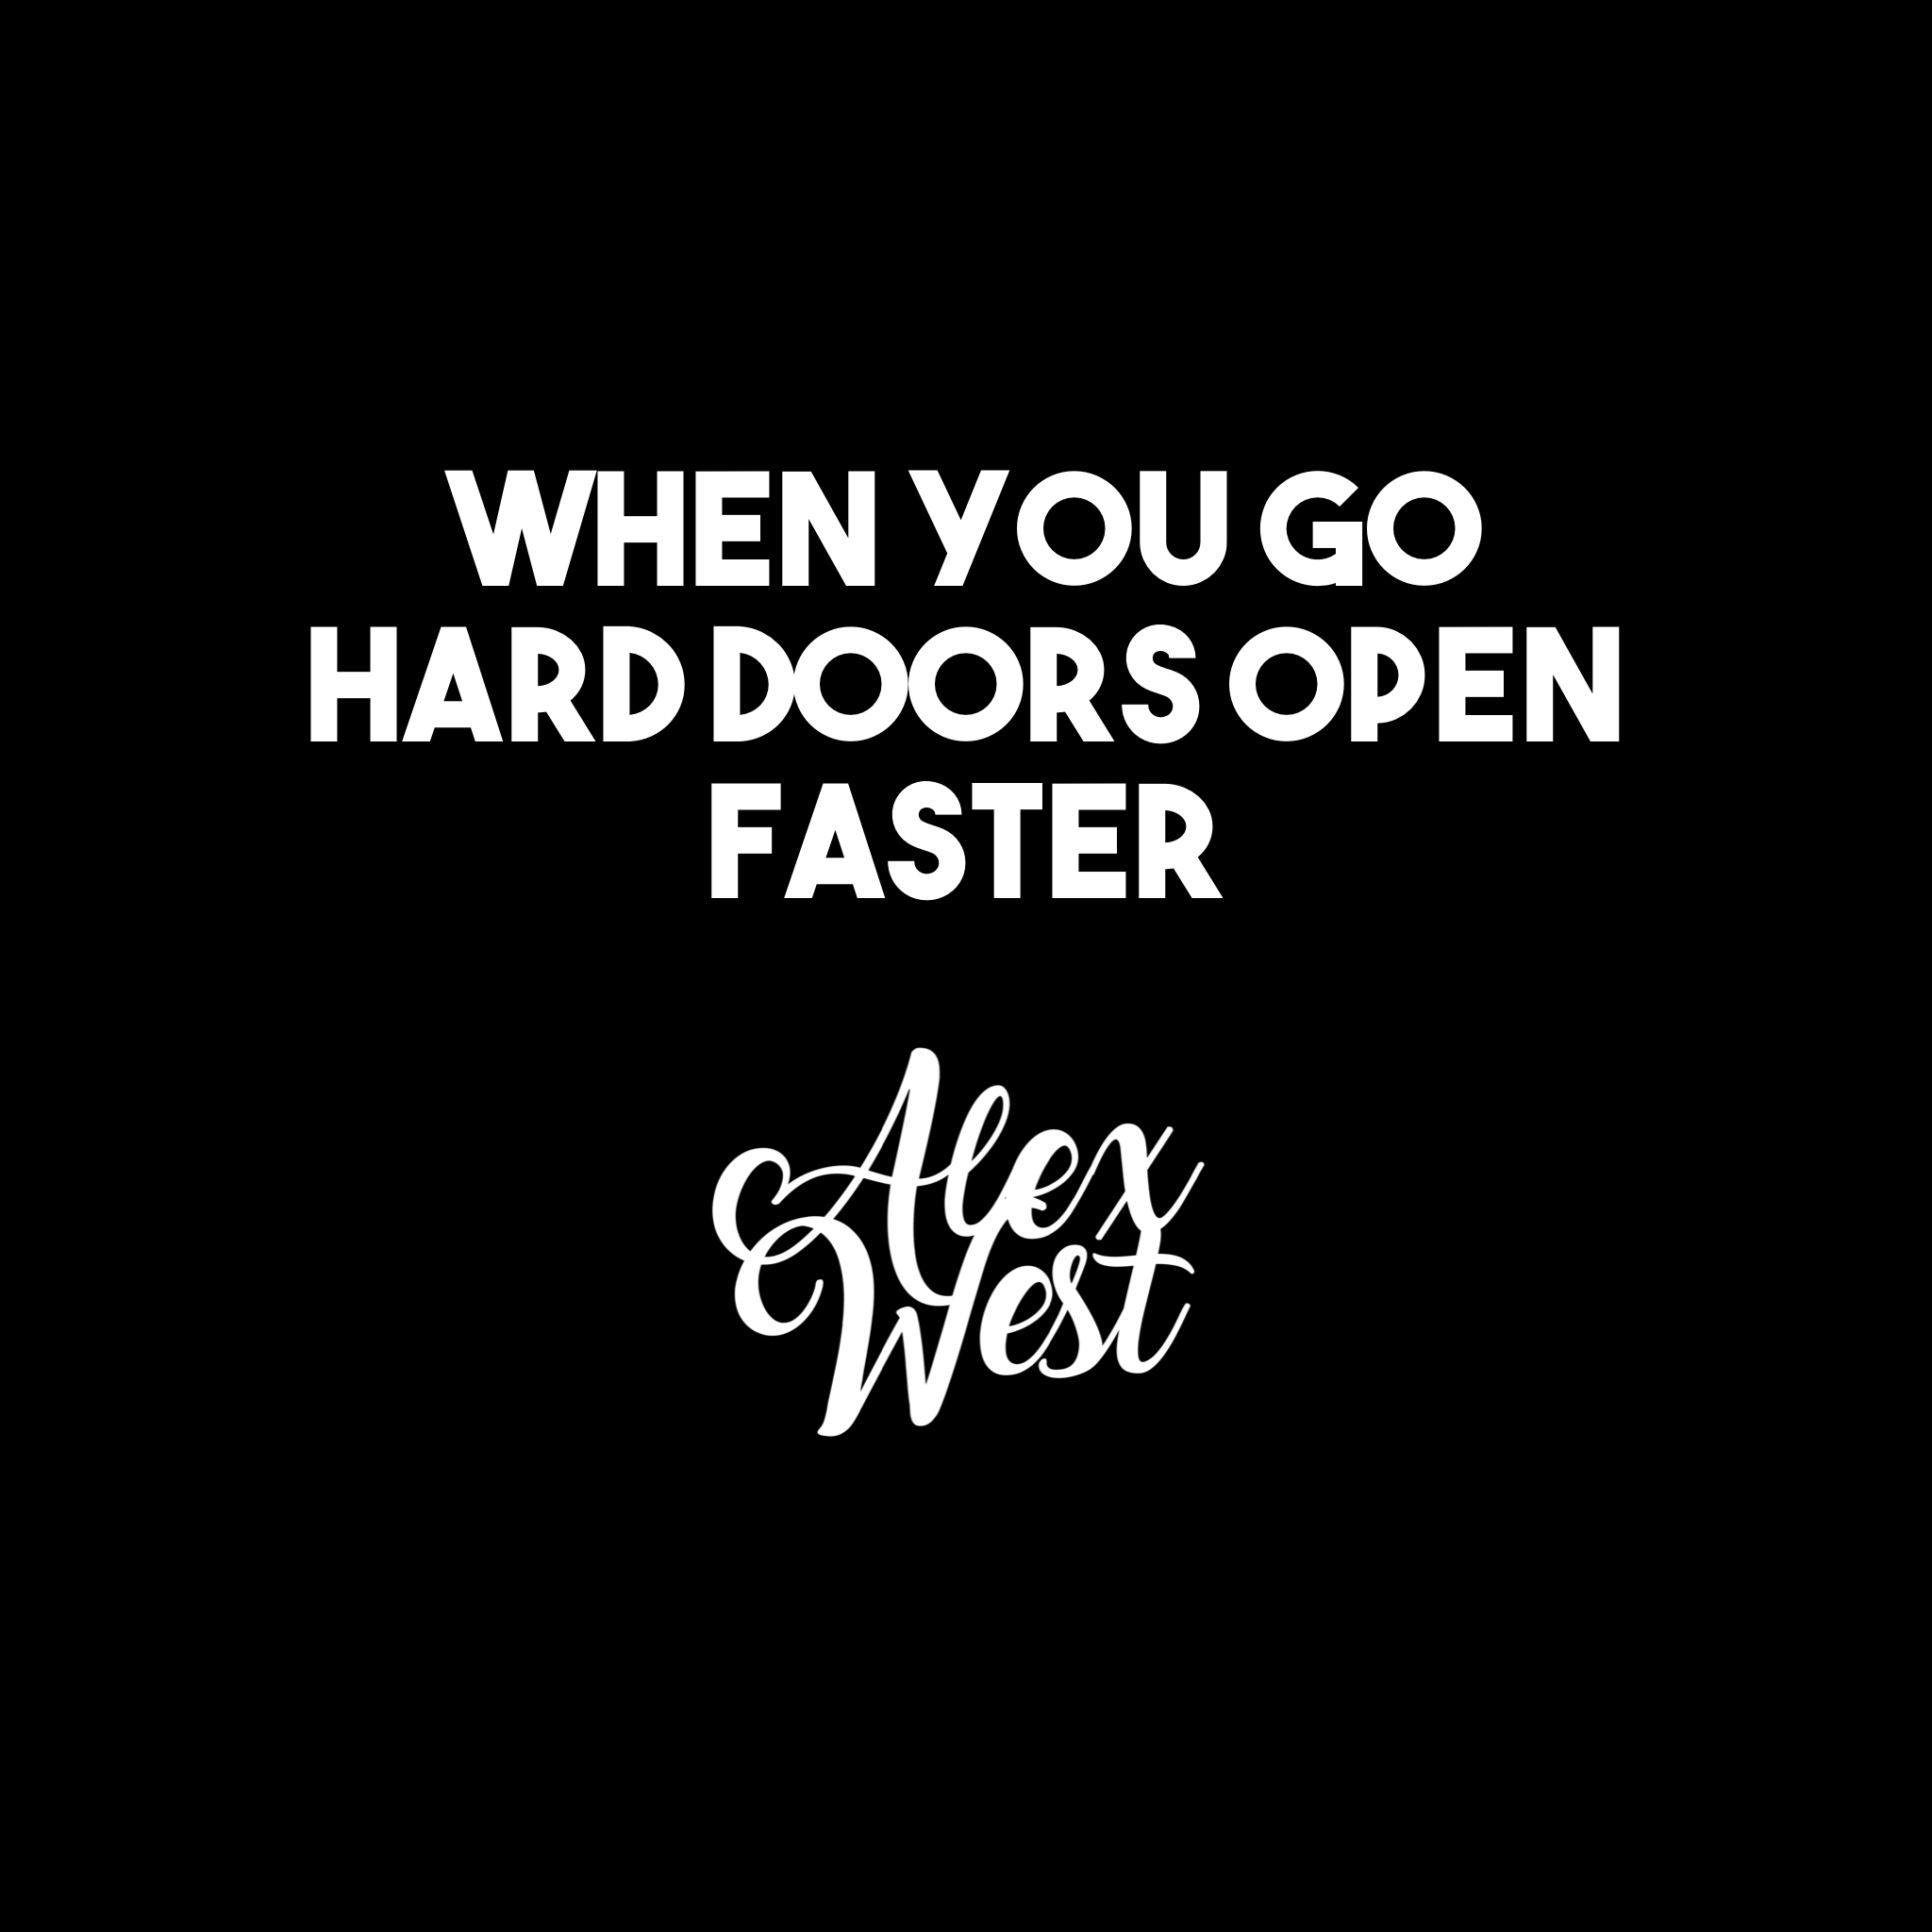 motivation quotes success inspiration gym fitness nike clothes fashion luxury success